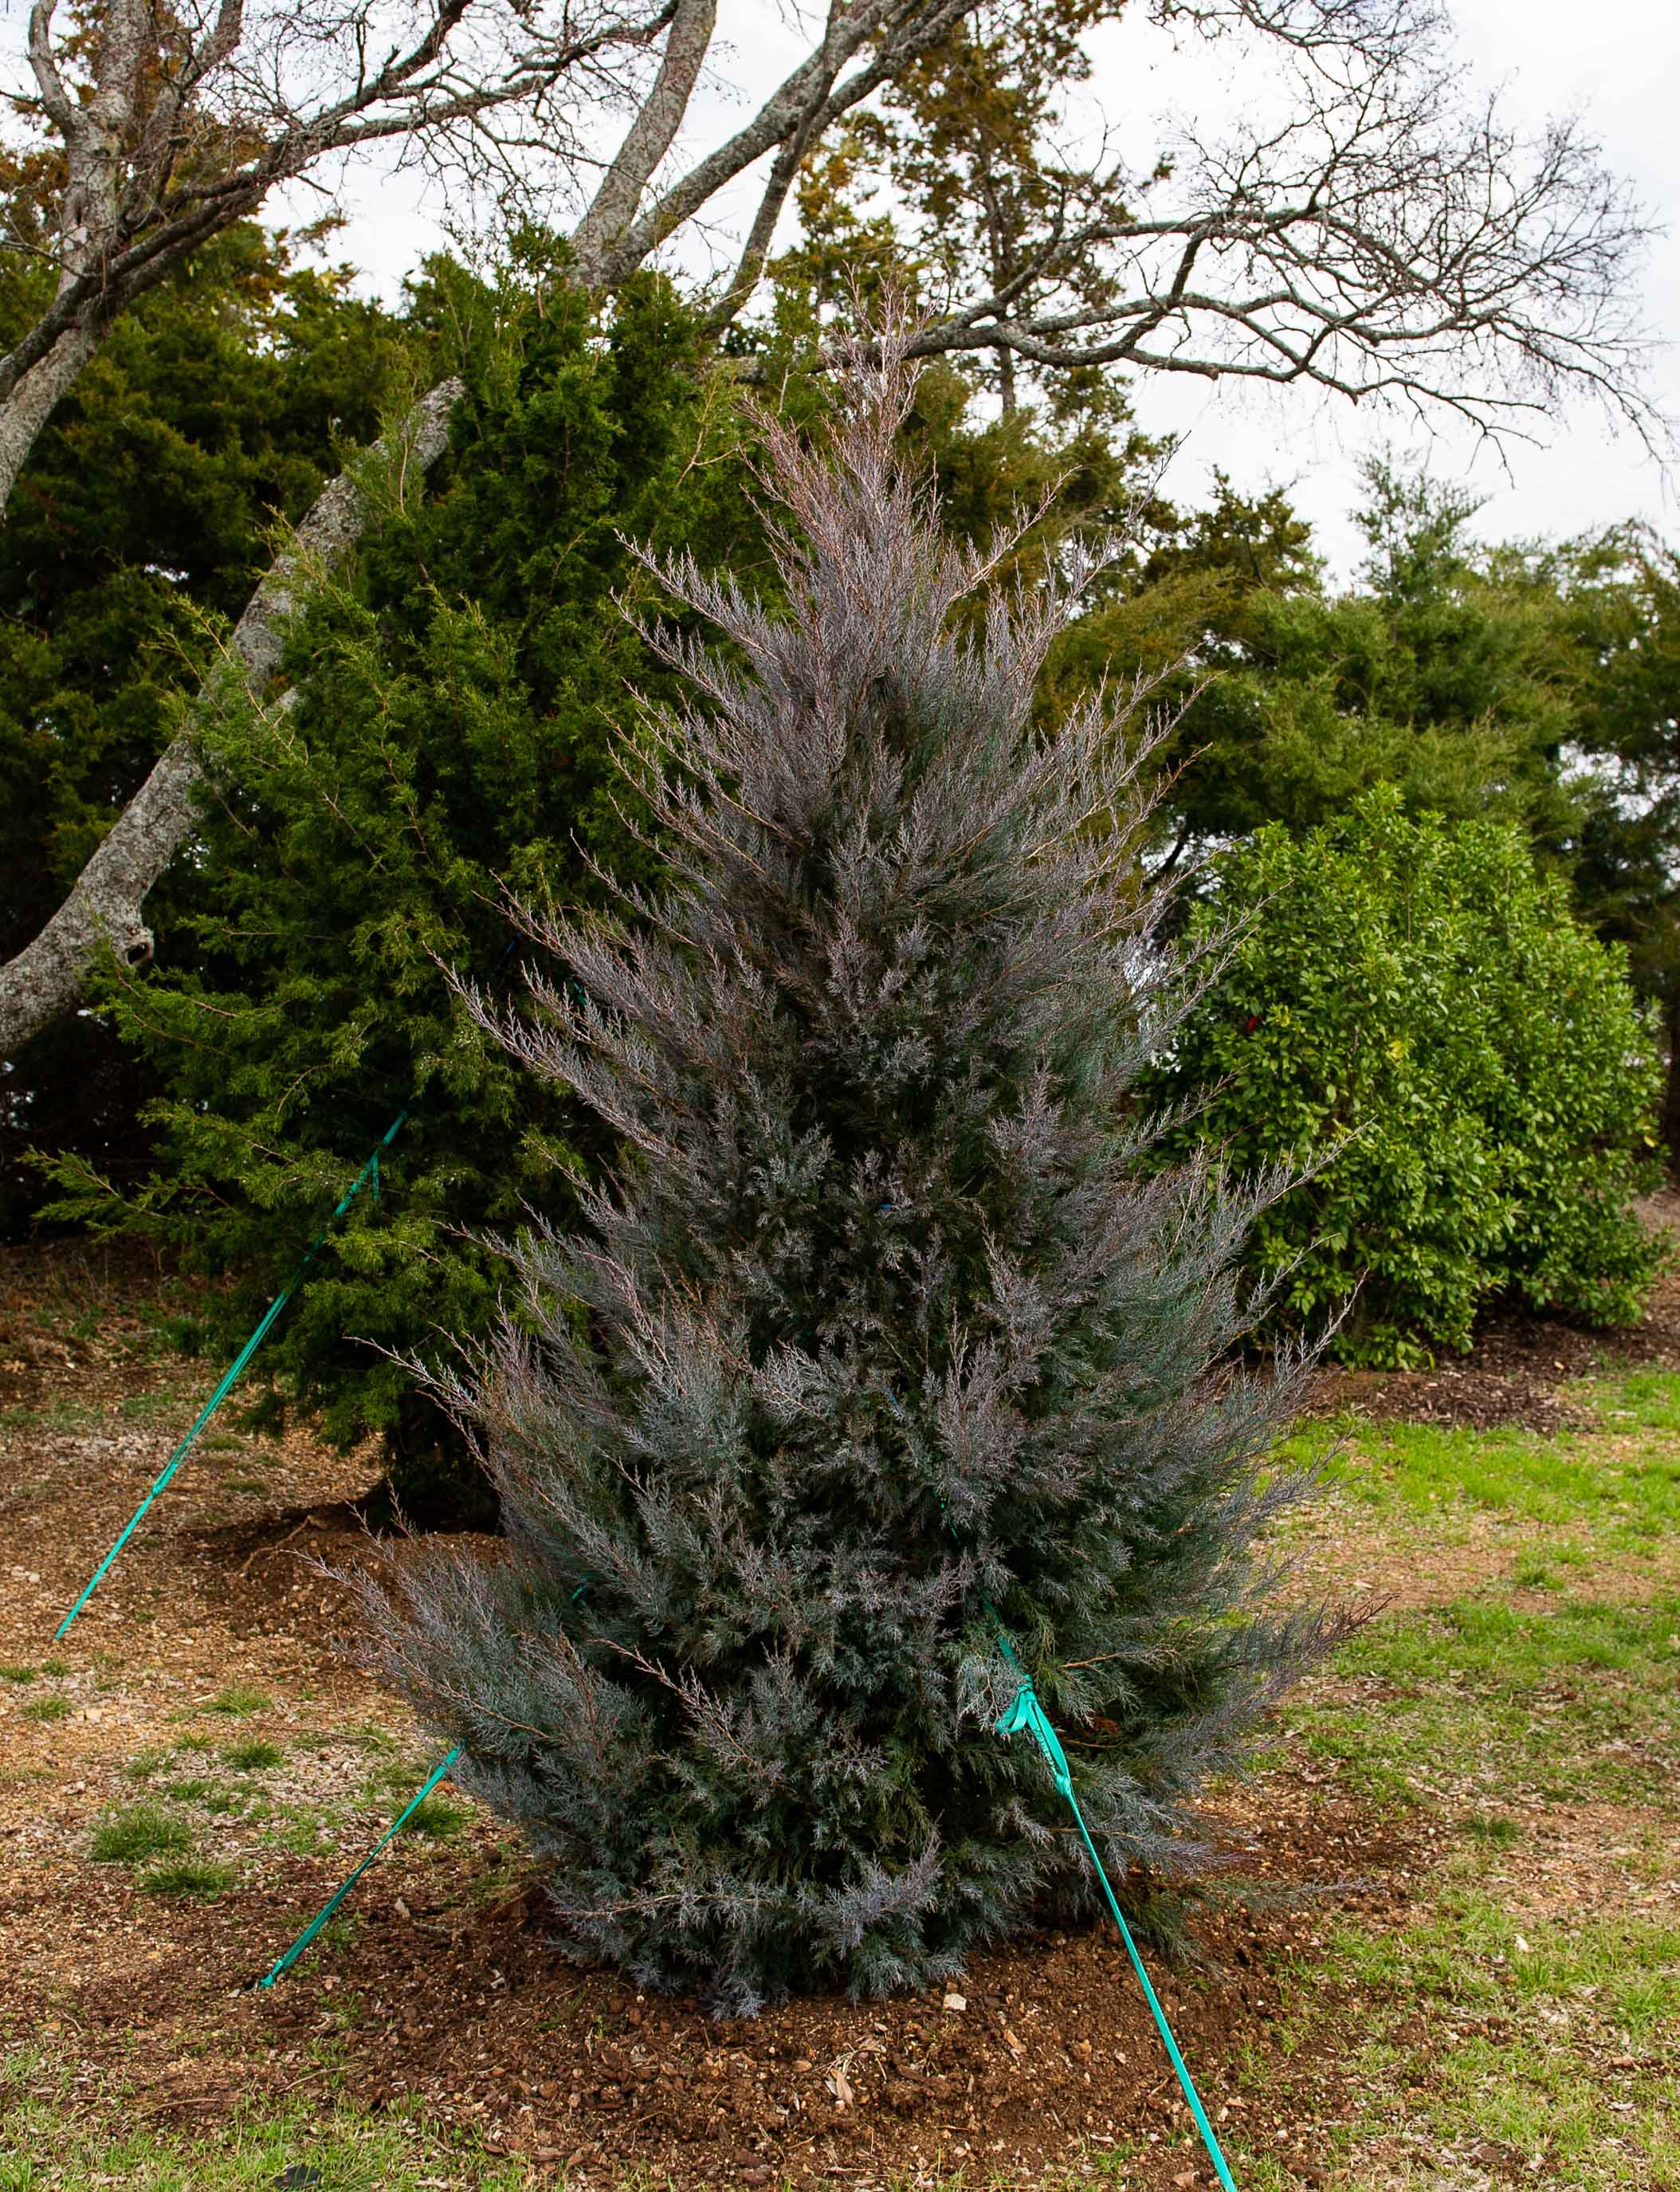 Eastern Red Cedar 'Burkii' trees turn a grayish plum in the Winter when the temperatures drop.